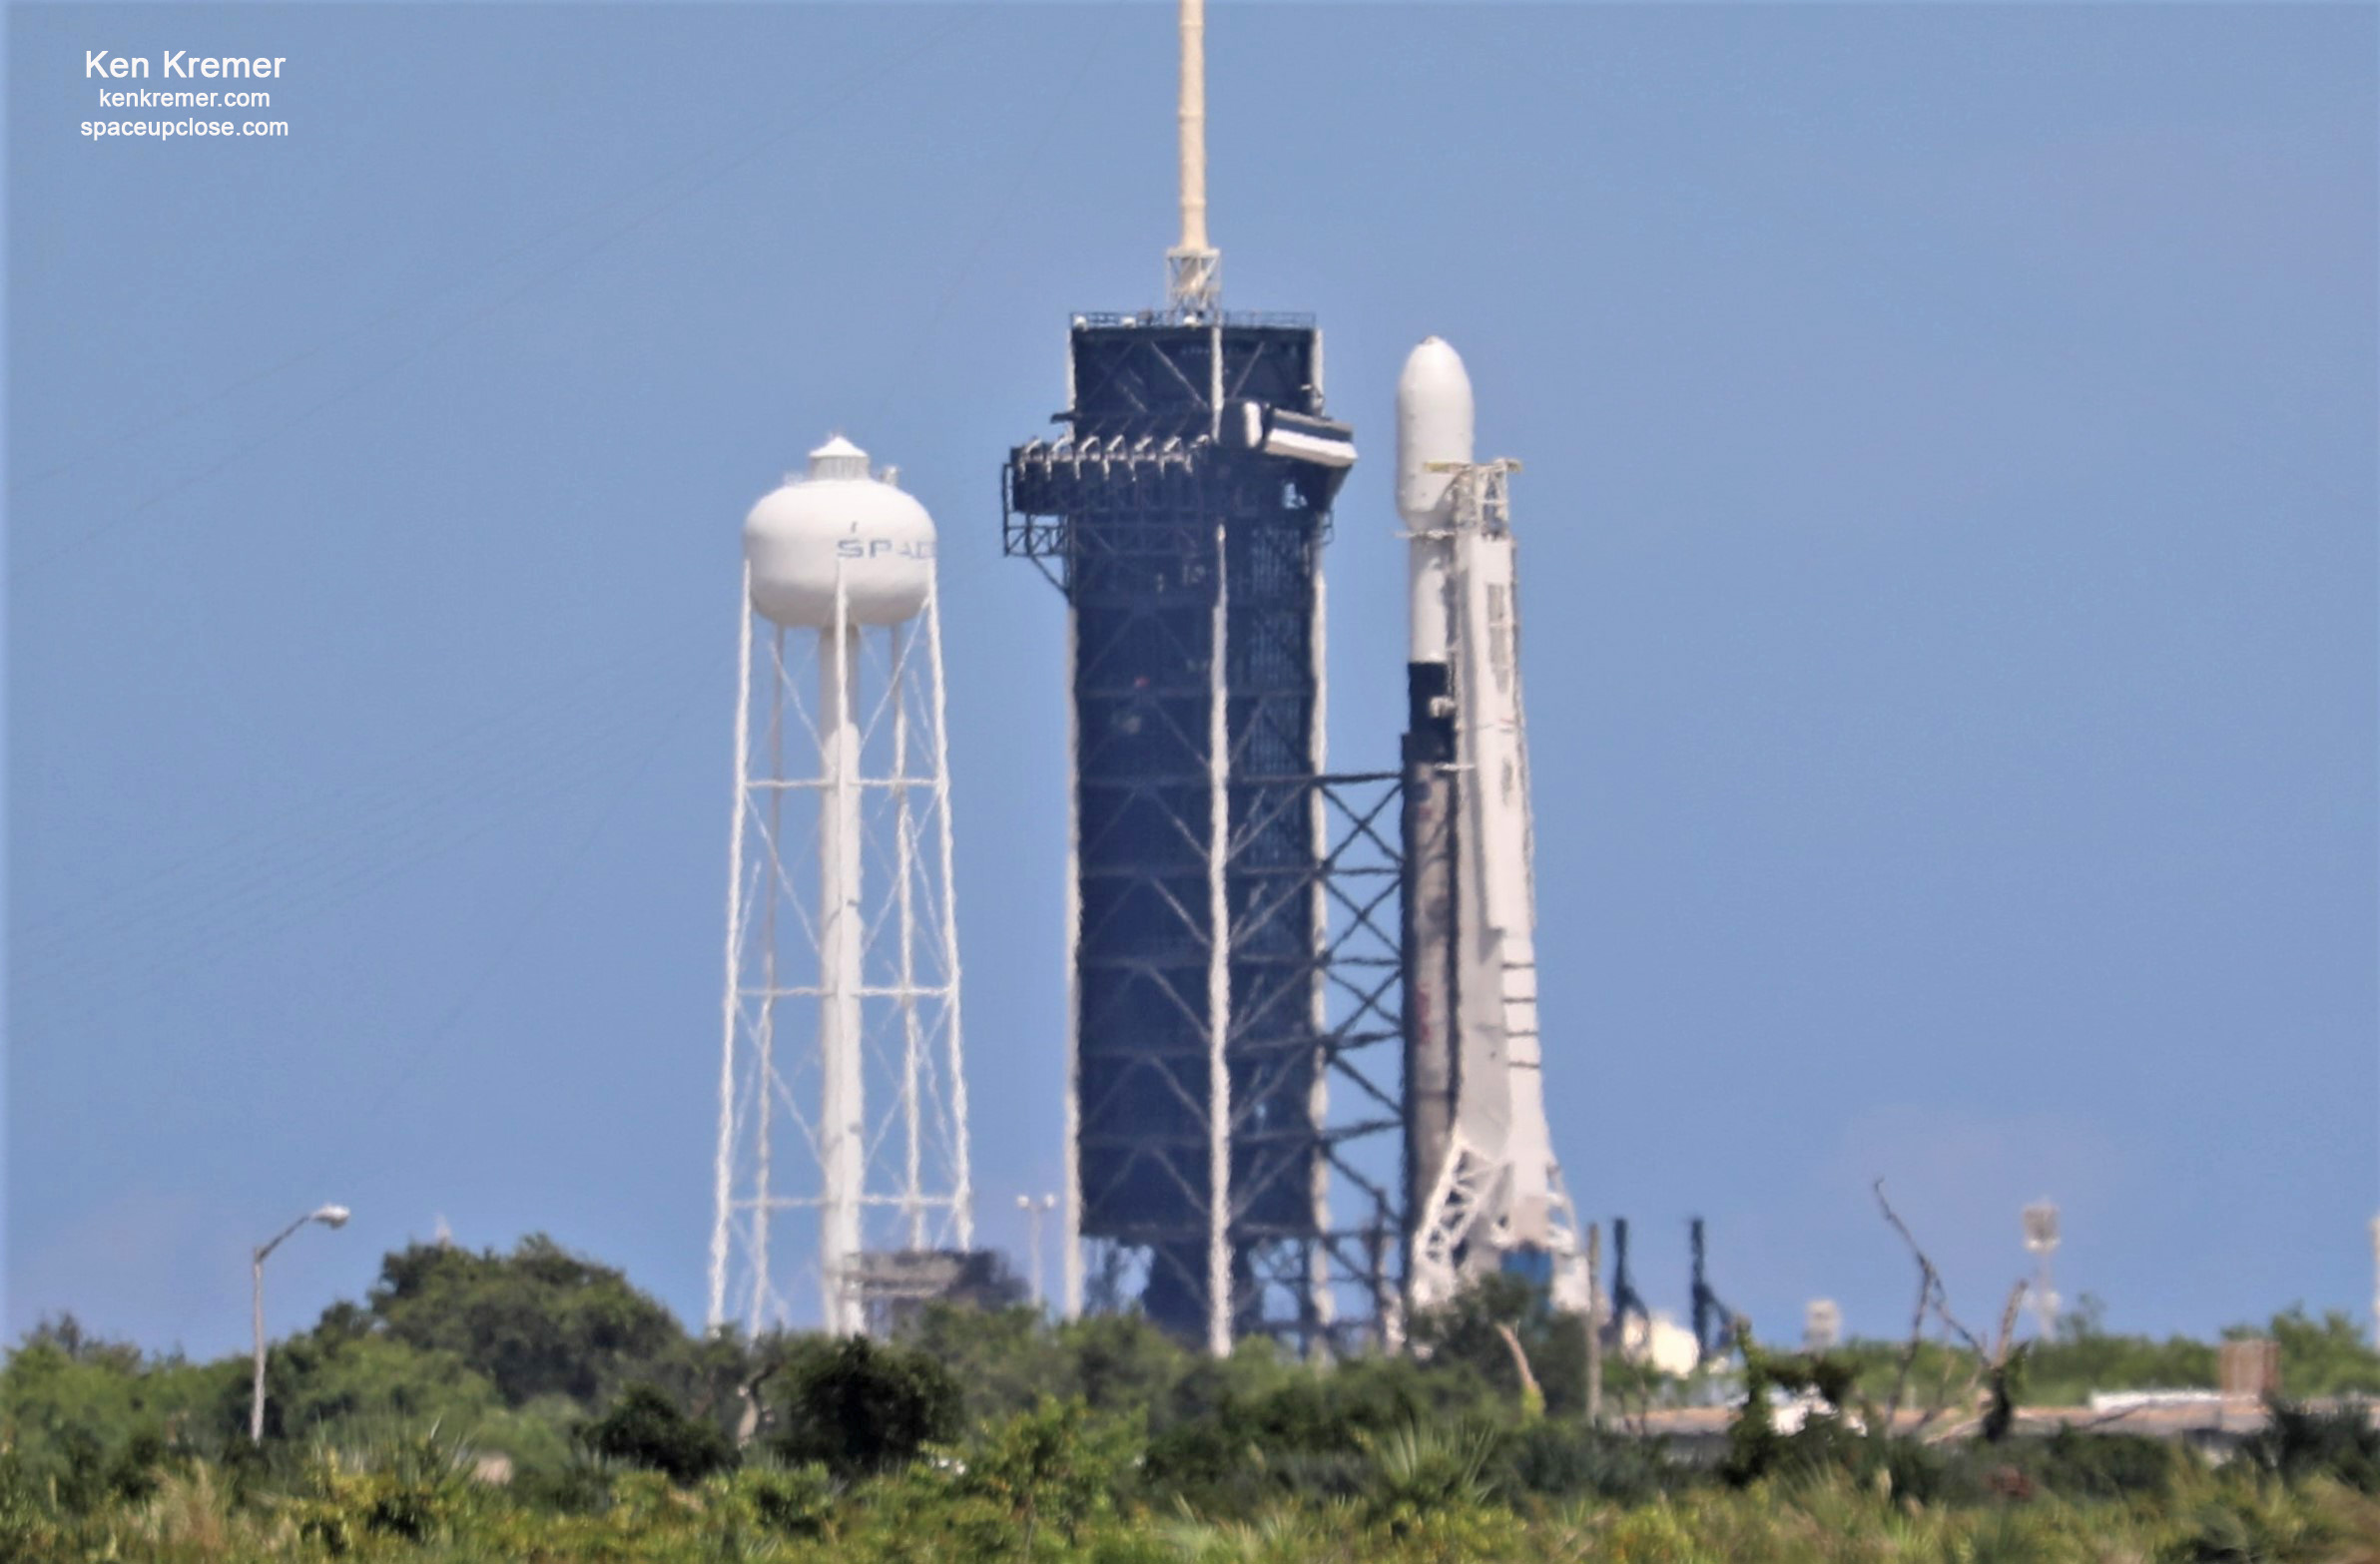 3 Space Coast Rocket Launches Reshuffled Again Puts SpaceX in the Lead Sept. 28 After ULA Delays Delta IV Heavy: Photos/Watch Live